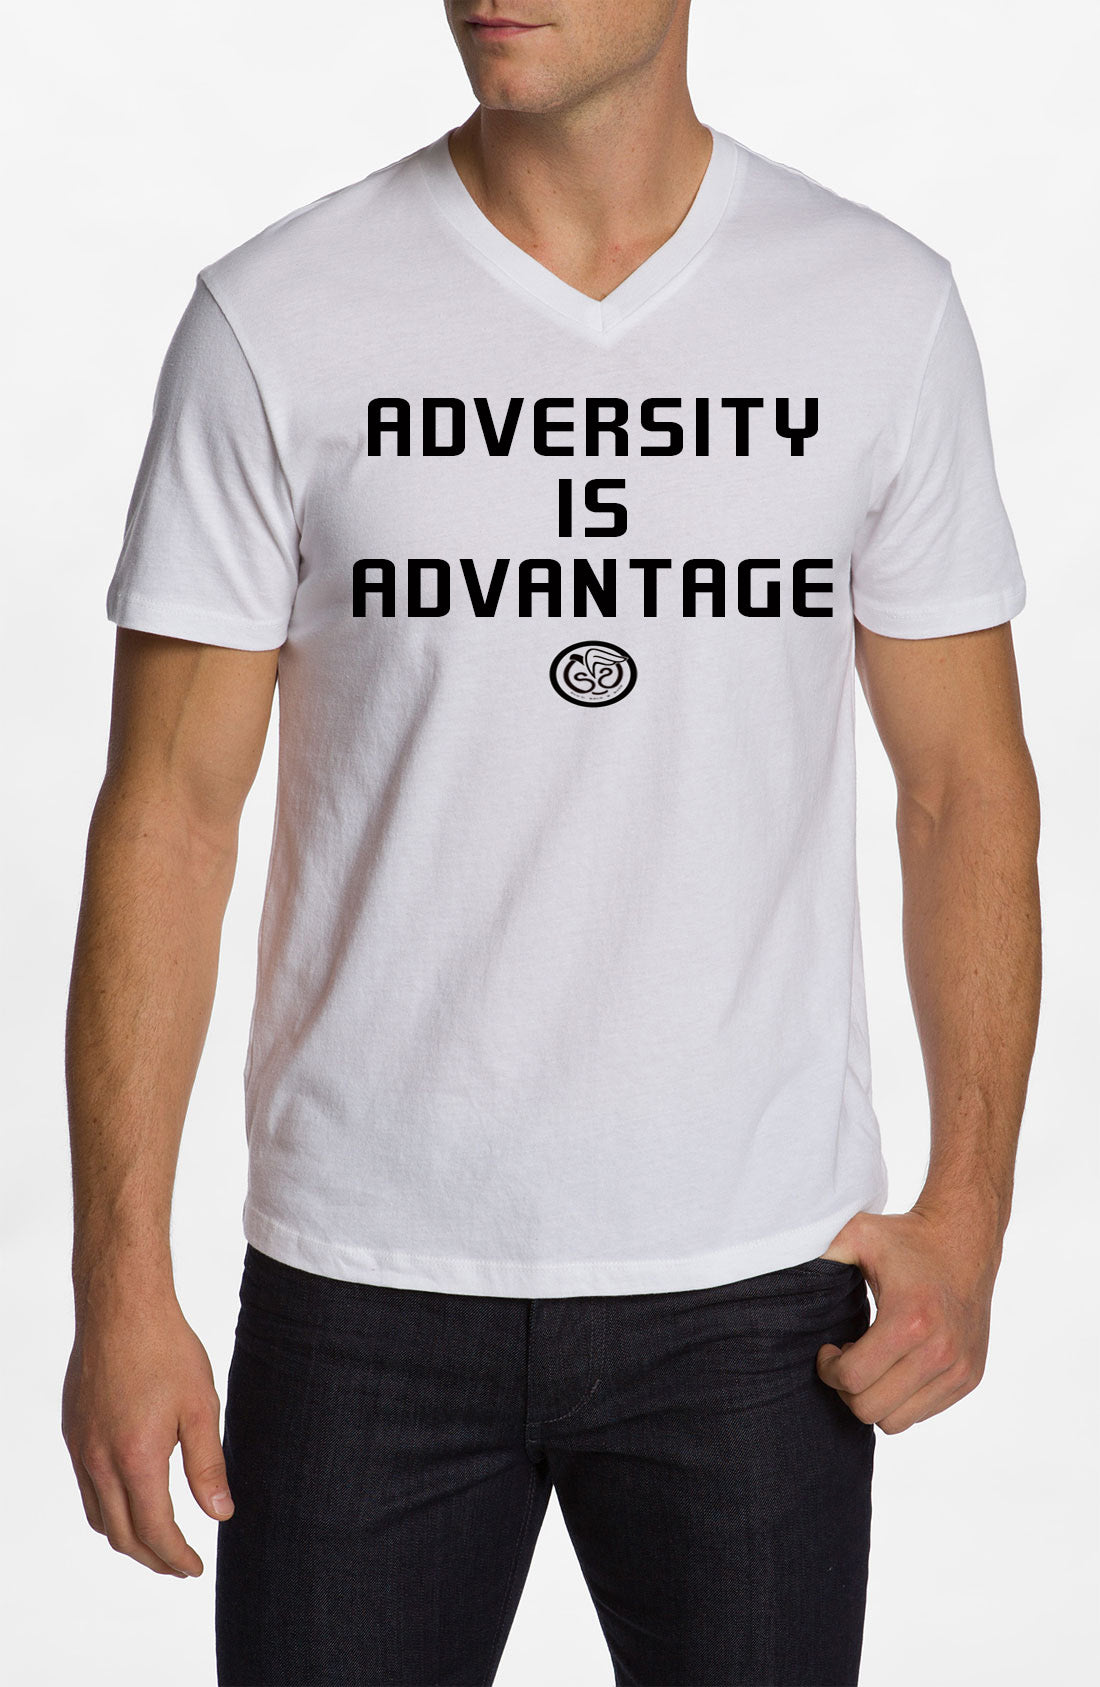 Advantage - White w/Black Logo